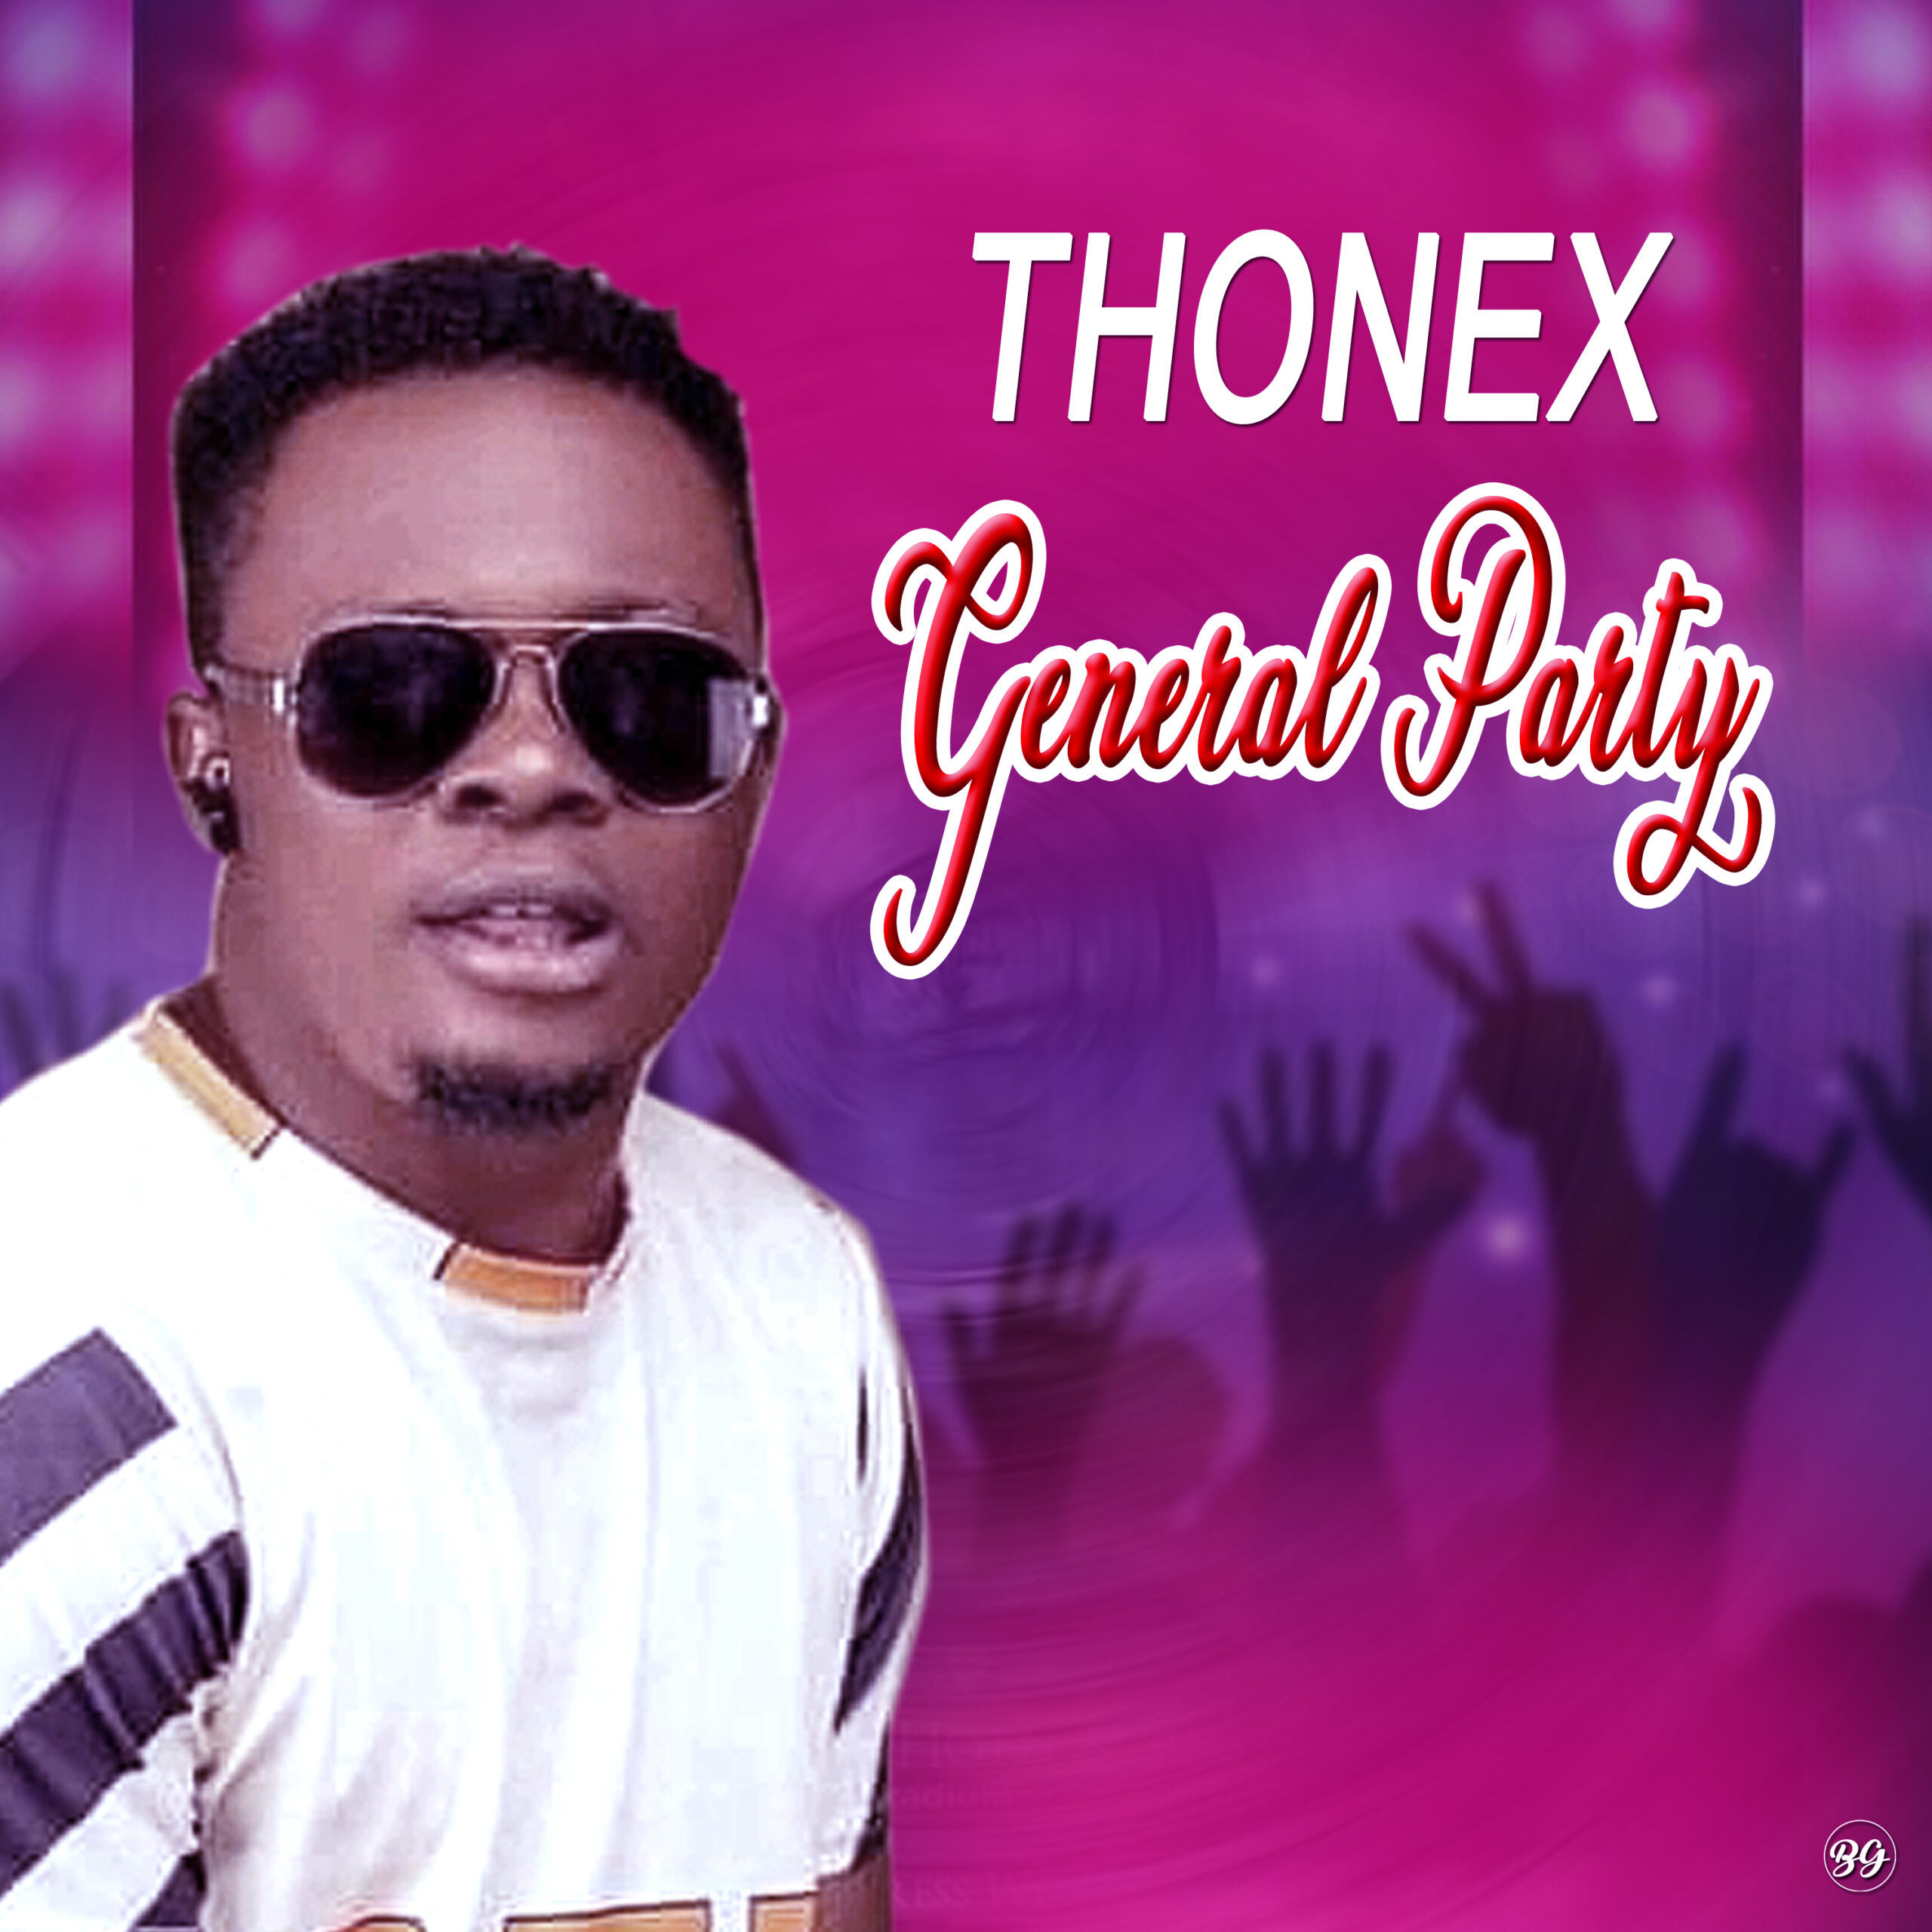 DOWNLOAD MUSIC: Thonex – General Party